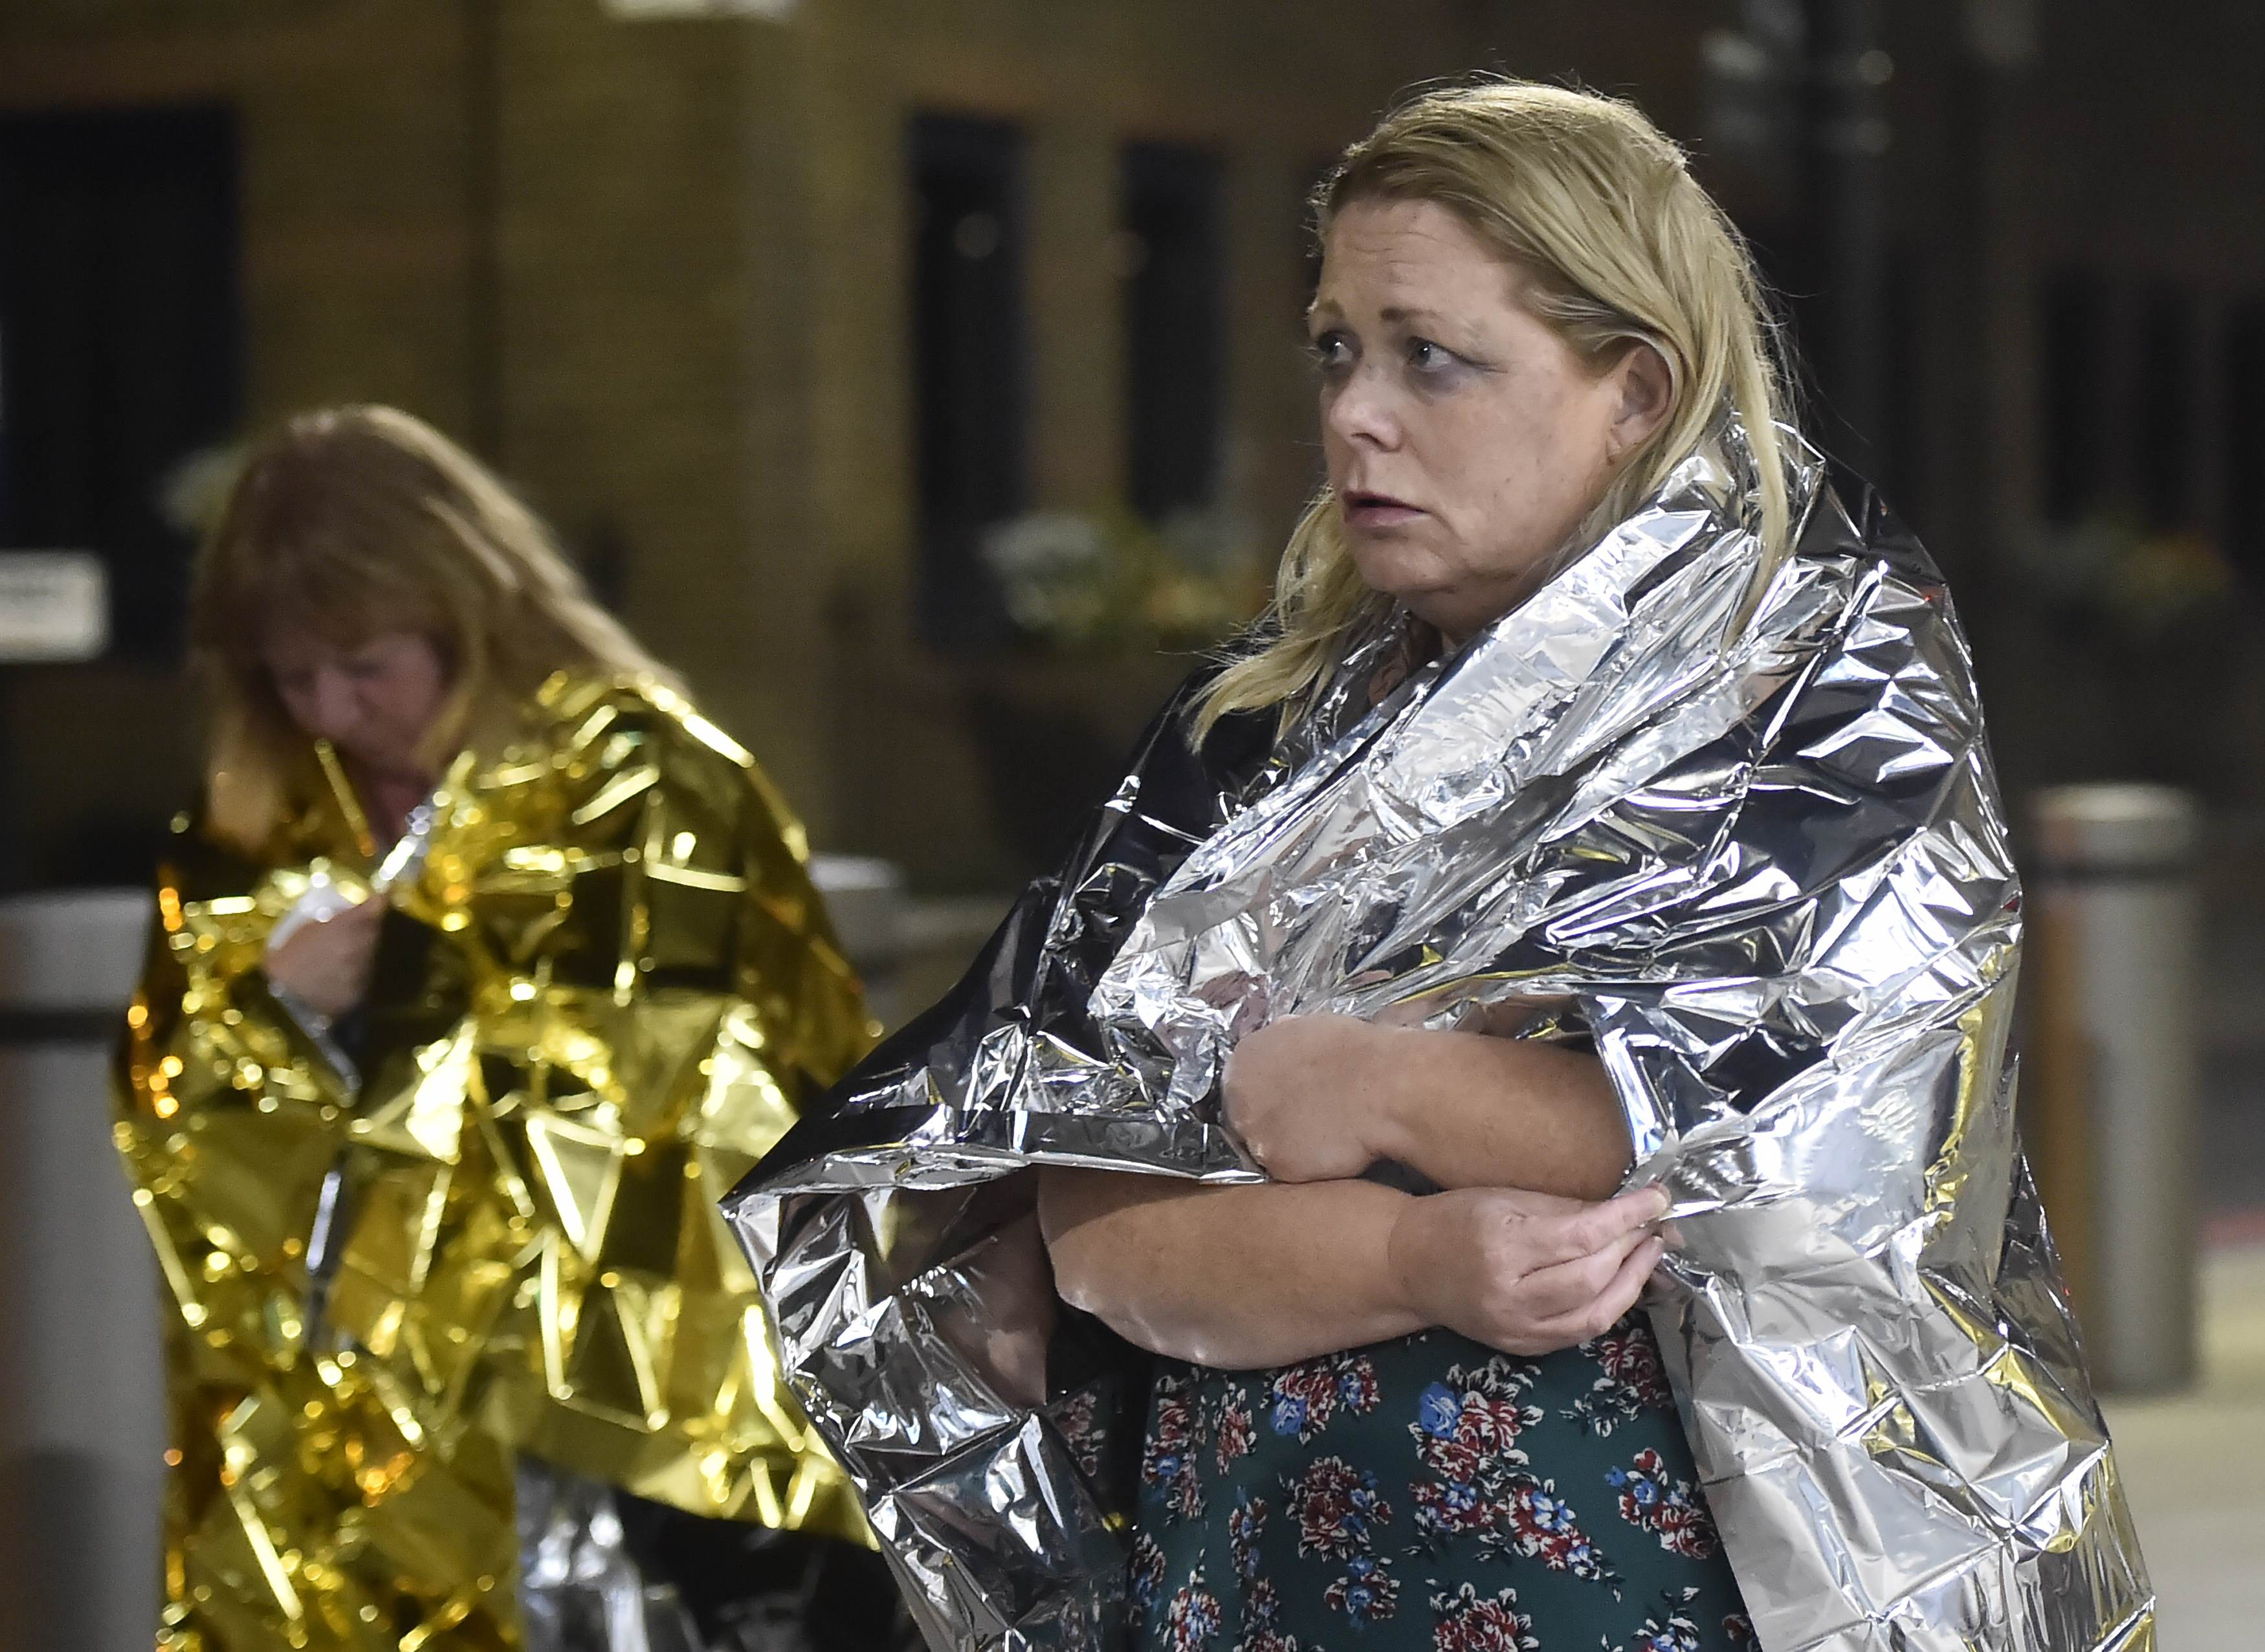 People leave the area wearing foil blankets after an incident near London Bridge in London, Britain June 4, 2017. REUTERS/Hannah Mckay TPX IMAGES OF THE DAY